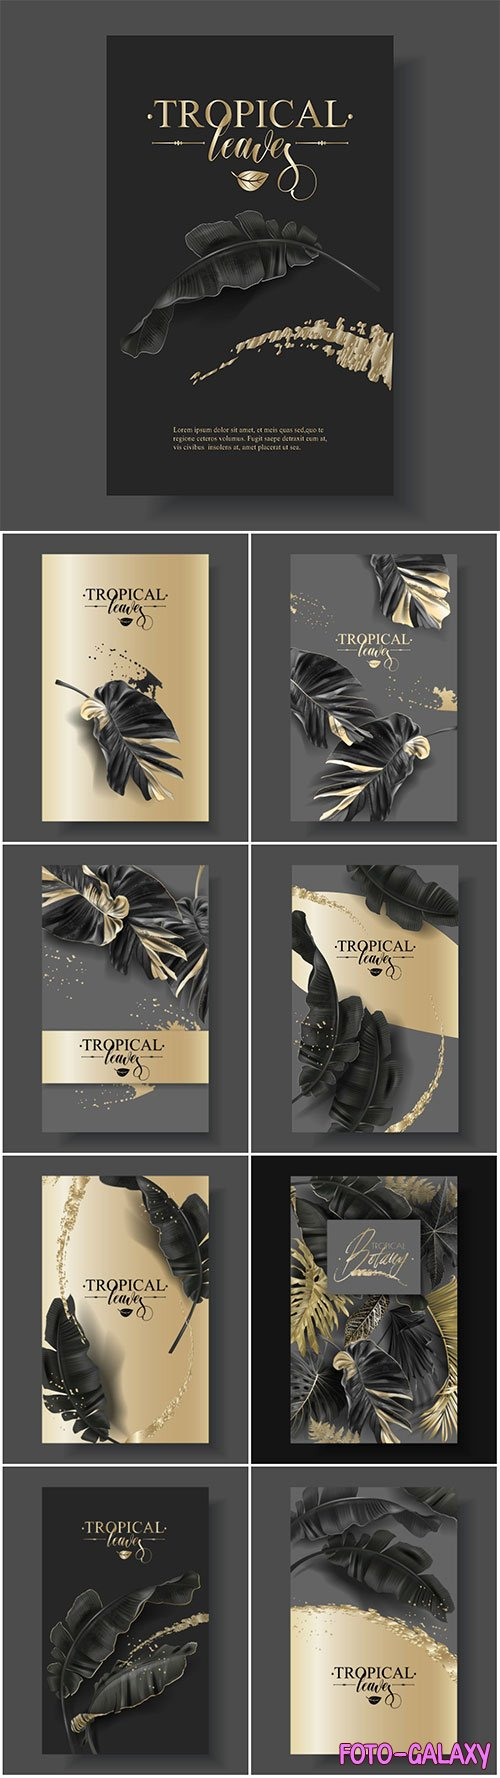 Vector banner with tropical leaves and gold splashes, design for cosmetics, spa, perfume